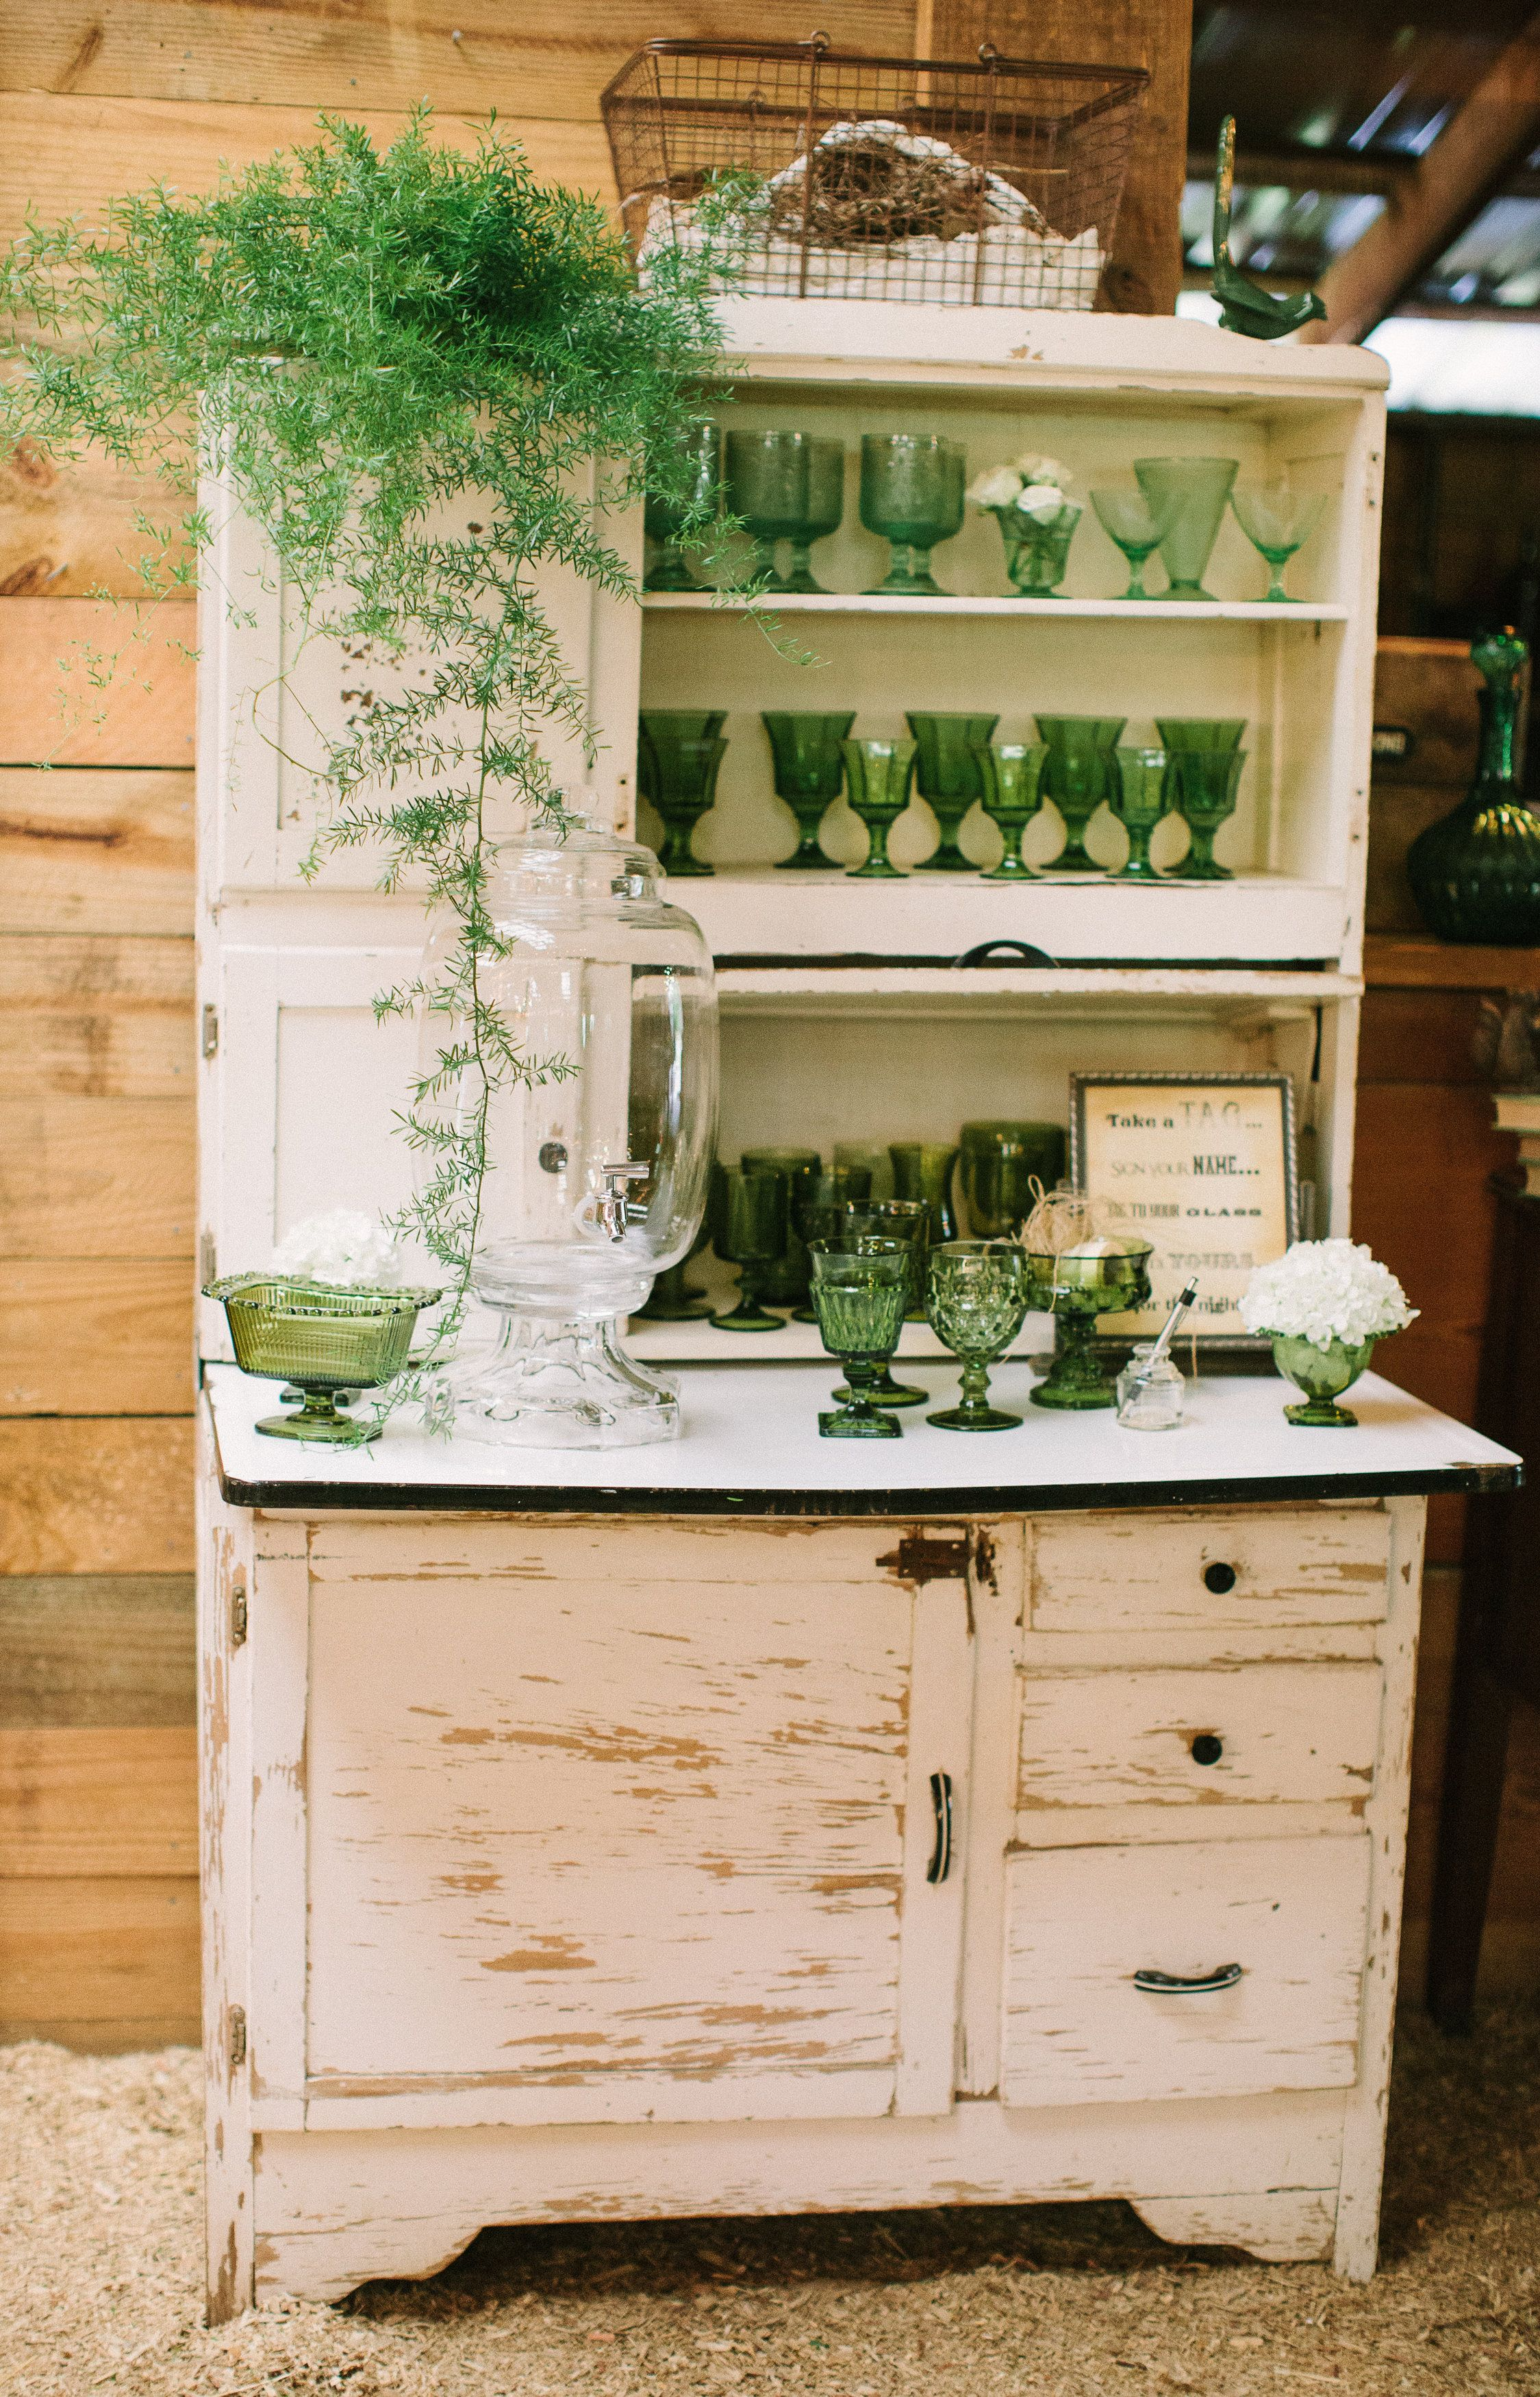 Hoosier Cabinet From Southern Vintage Rentals Makes A Great Drink Station    @vinewoodevents Spring Open House 2013